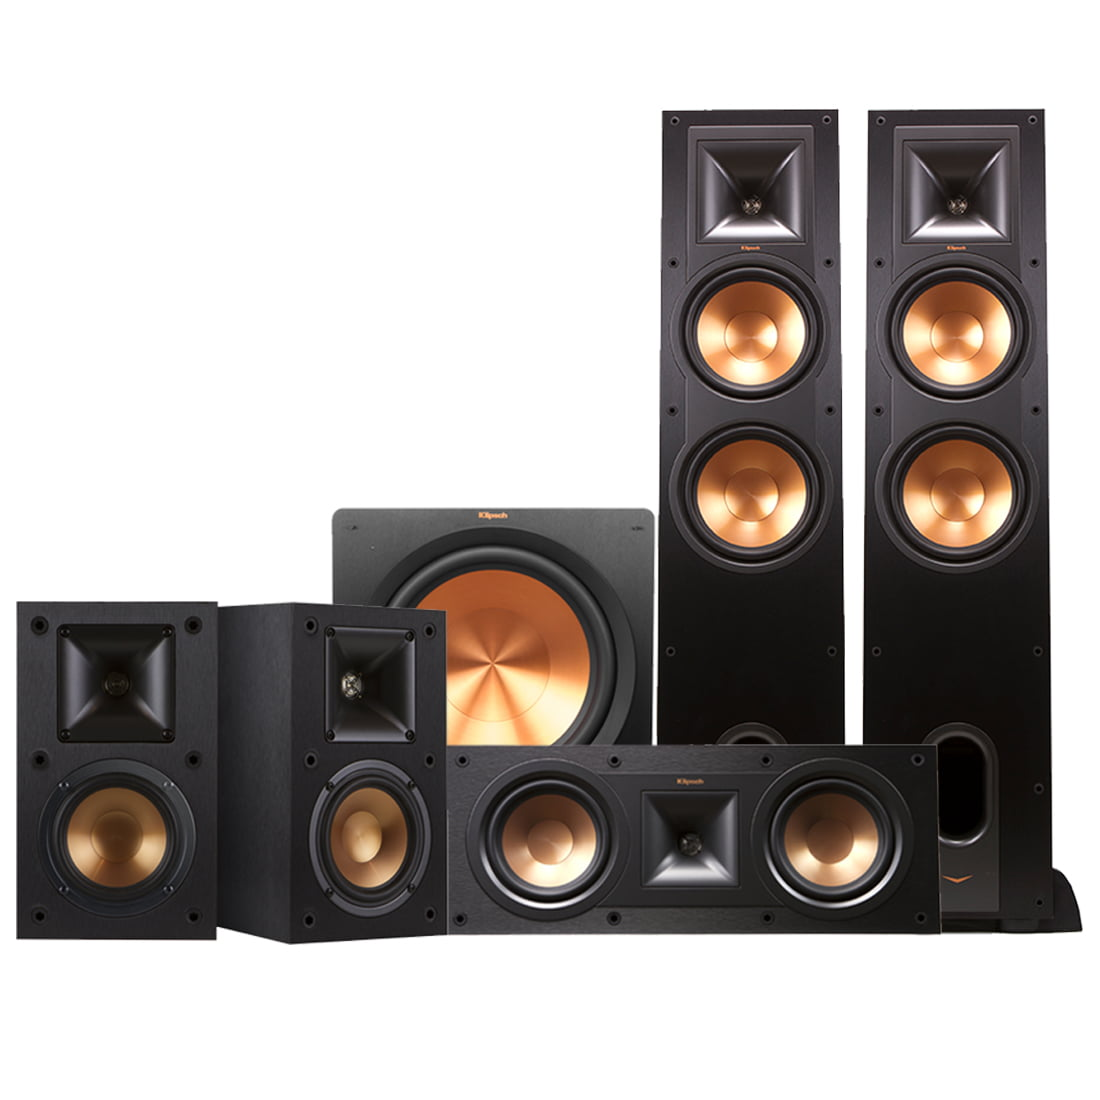 the ea klipsch iii is for floor hero standing speakers floors walnut a canada soul little heresy web good